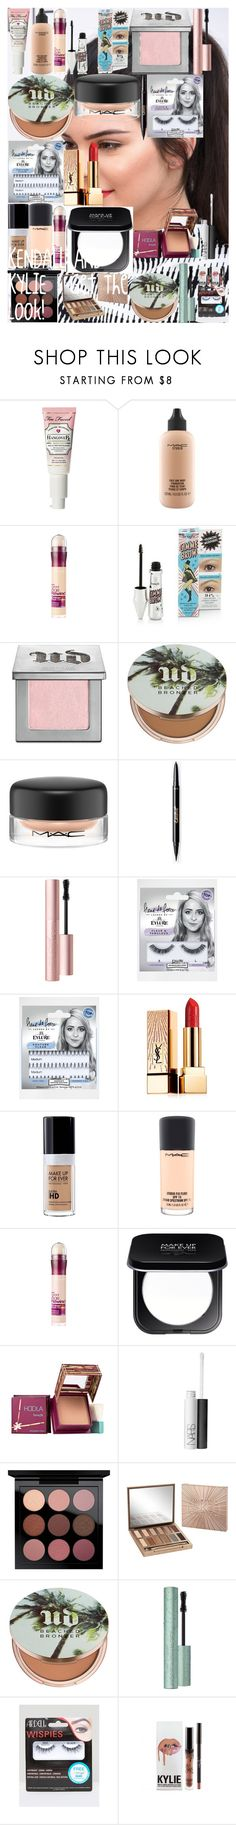 """""""KENDALL AND KYLIE : Get The Look!"""" by oroartyellie on Polyvore featuring beauty, MAC Cosmetics, Maybelline, Urban Decay, eylure, Yves Saint Laurent, MAKE UP FOR EVER, Benefit, NARS Cosmetics and Ardell"""